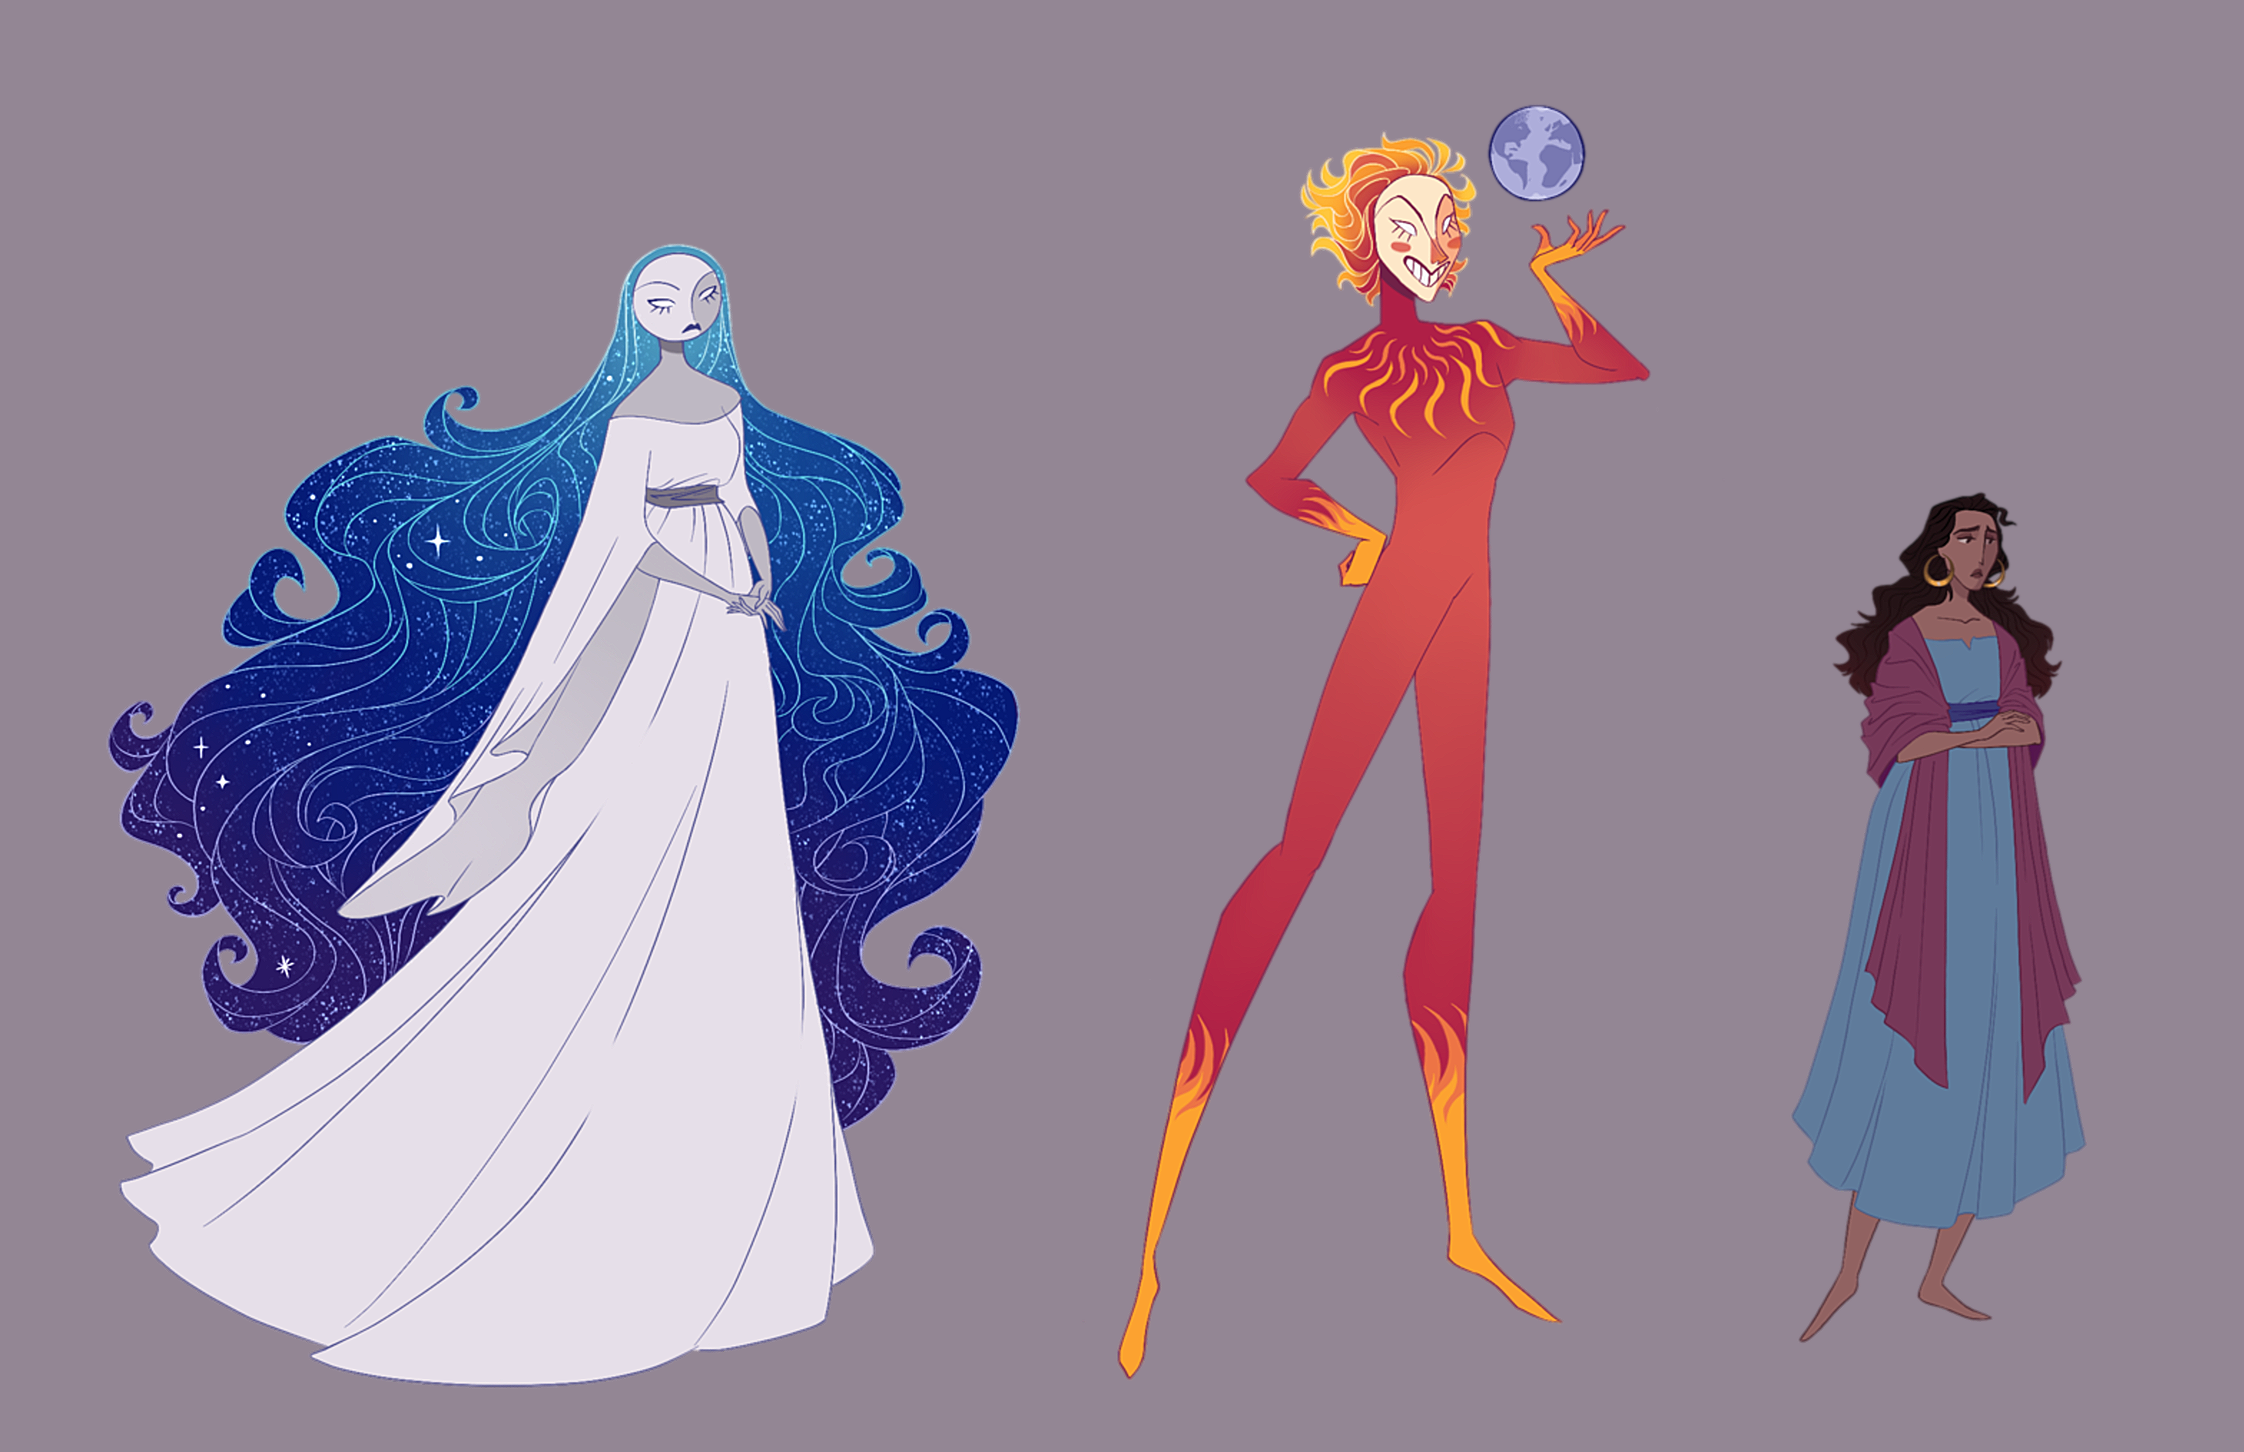 Hijo de la Luna - Character designs and visual development based on the song